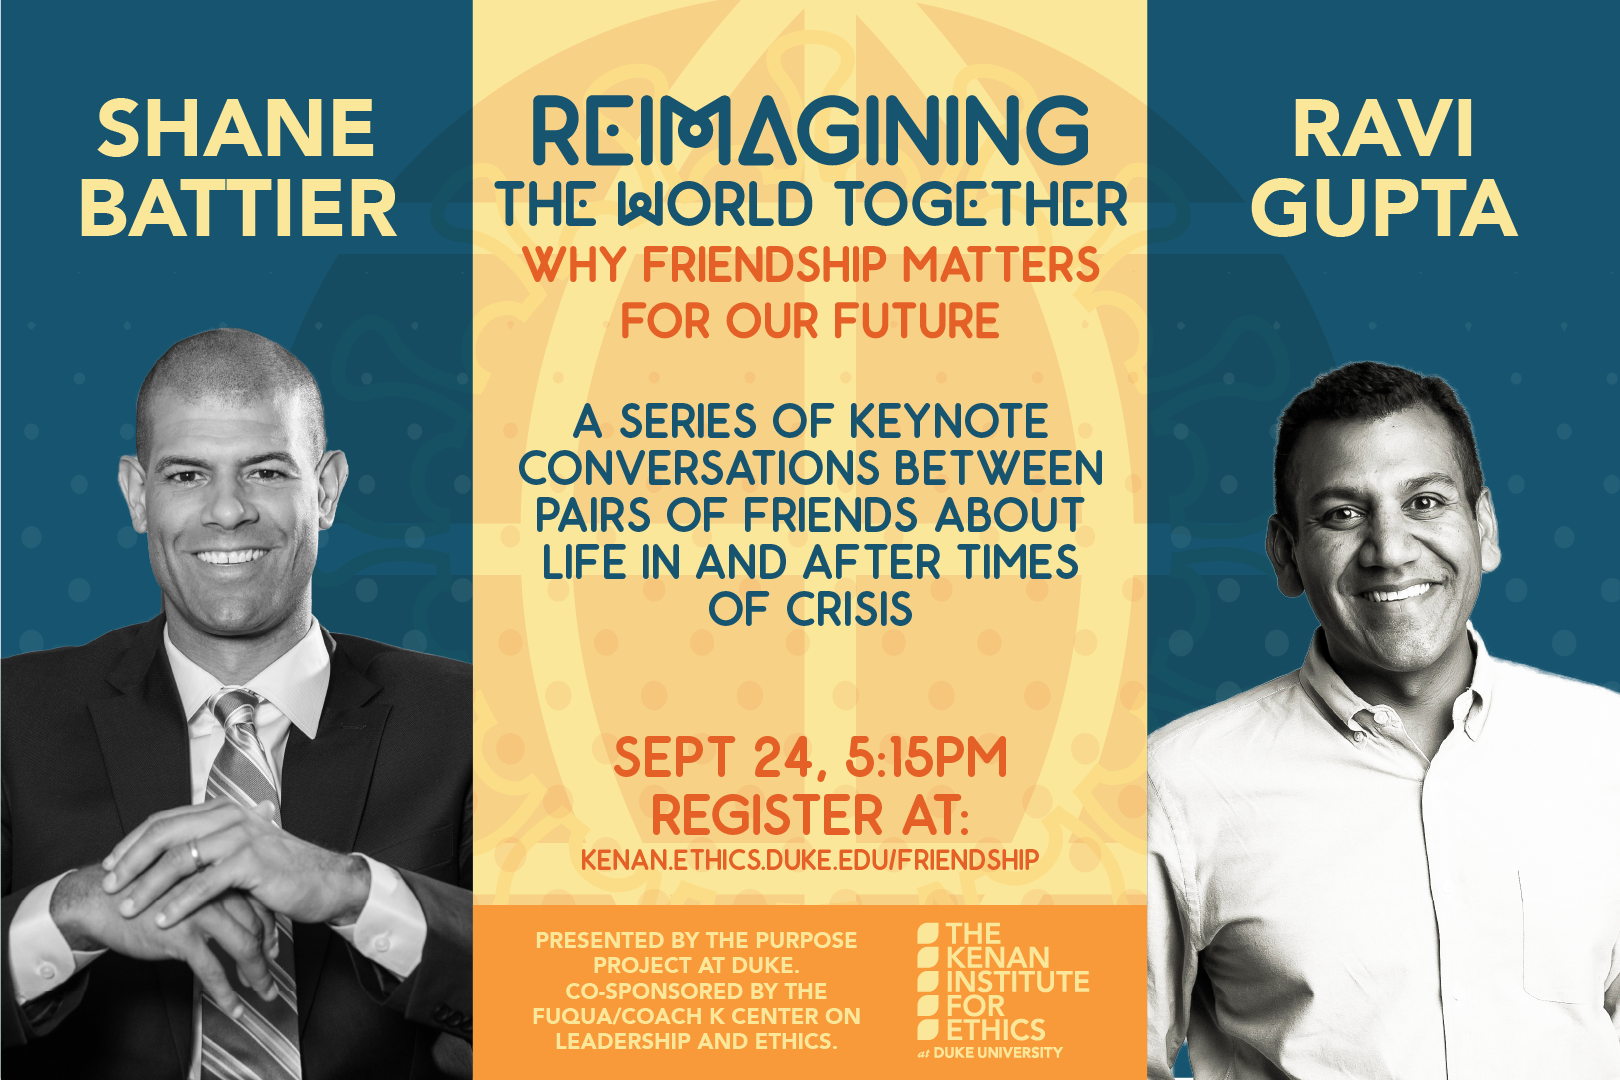 Reimagining the World Together: A Conversation with Shane Battier and Ravi Gupta